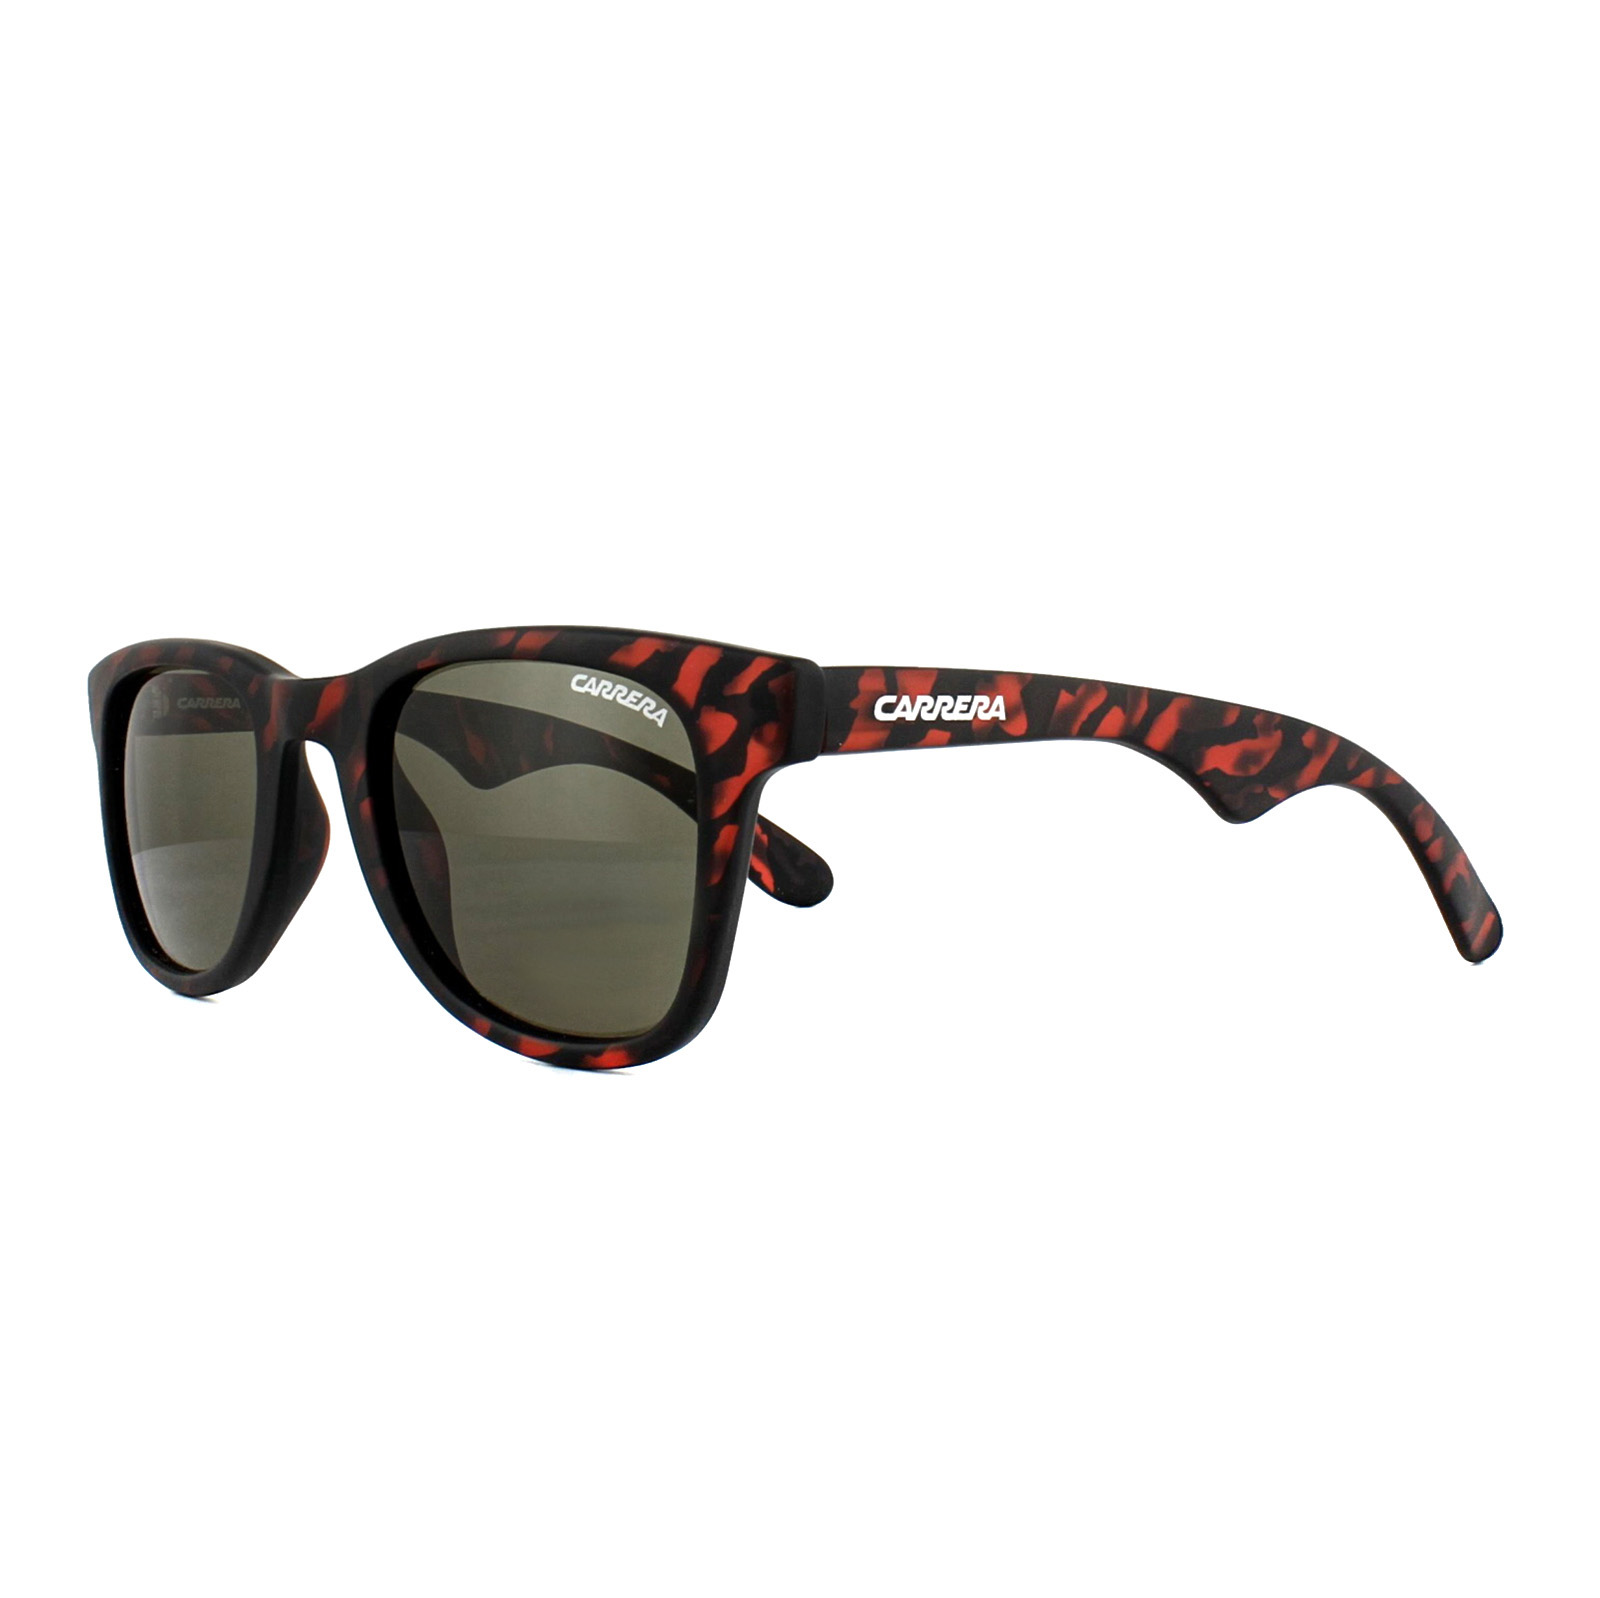 98d2b9fd05d6 Sentinel Carrera Sunglasses Carrera 6000 86M 70 Soft Dark Red Havana Brown